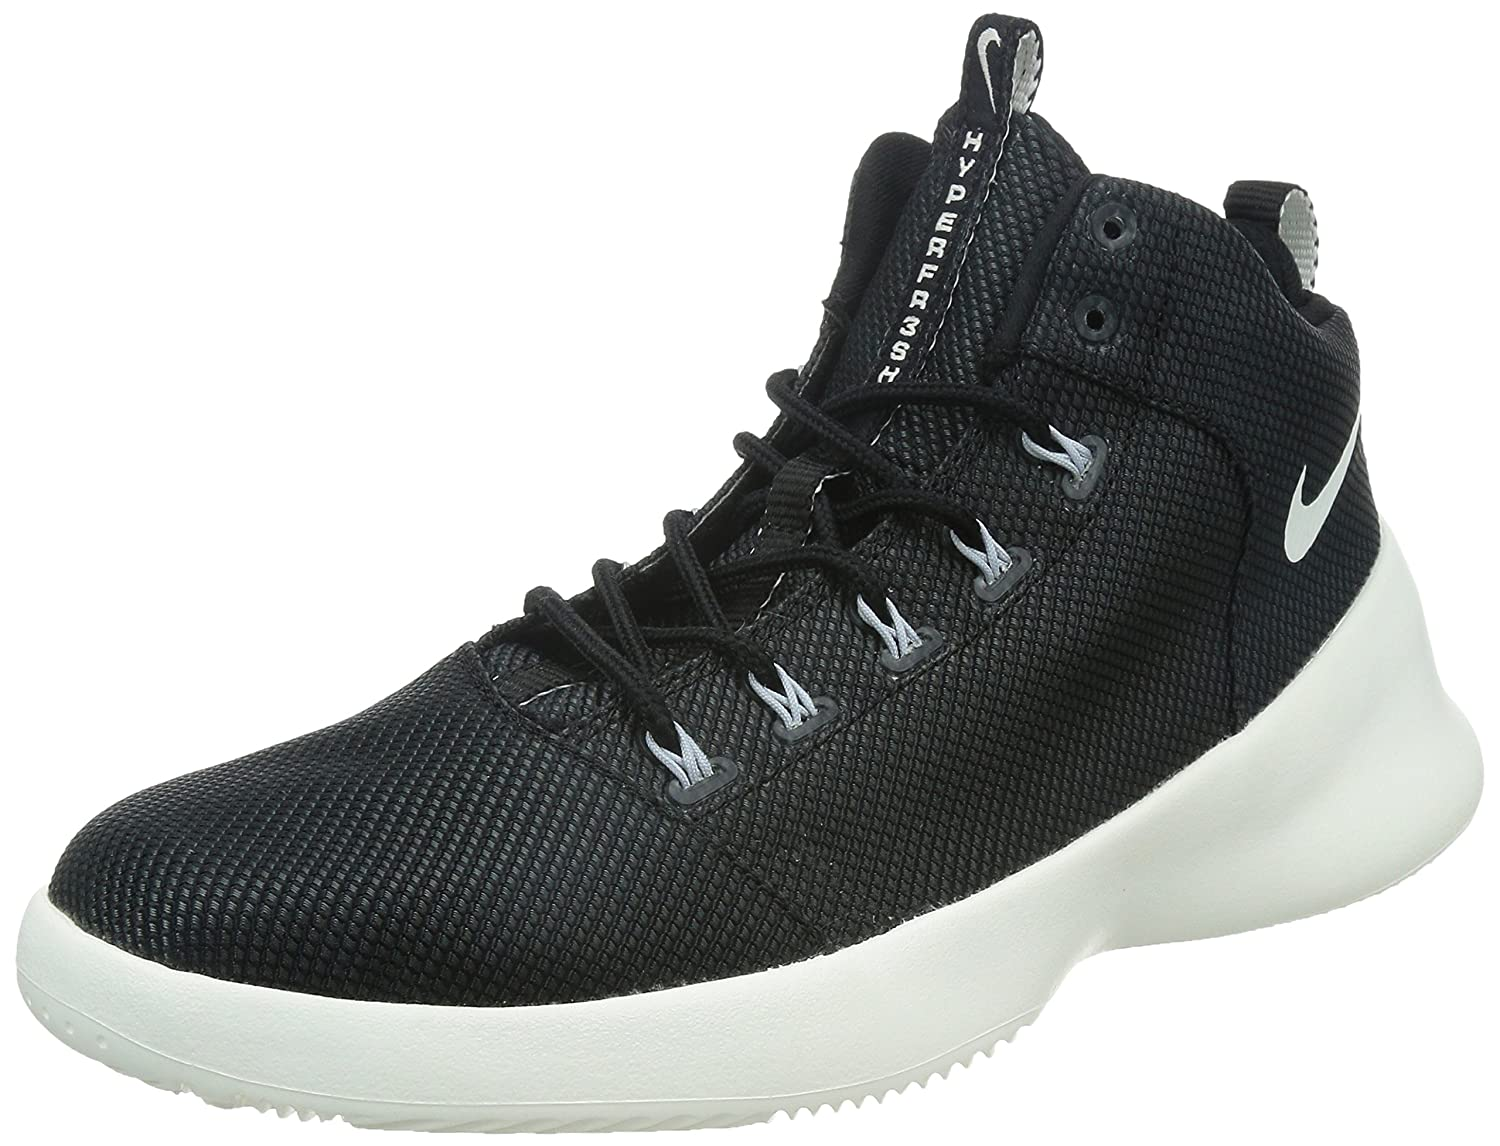 NIKE Nike Men Hyperfr3sh Sneaker 10 D M US Outlet York